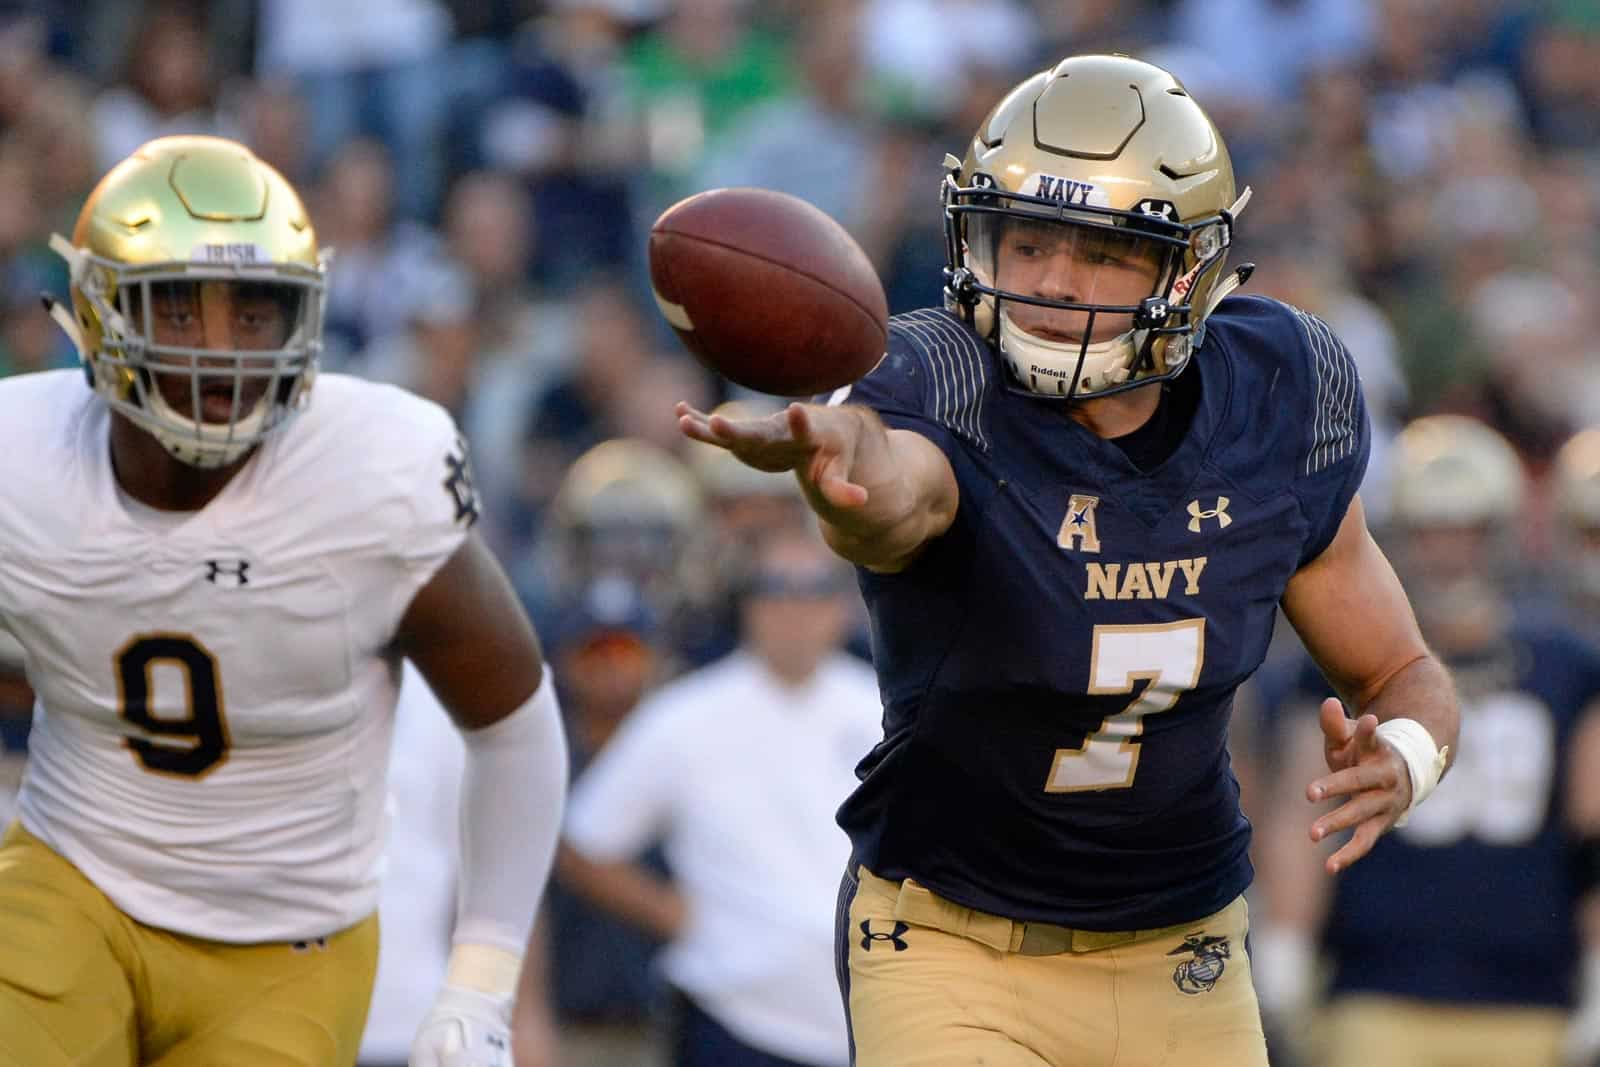 Navy-Notre Dame